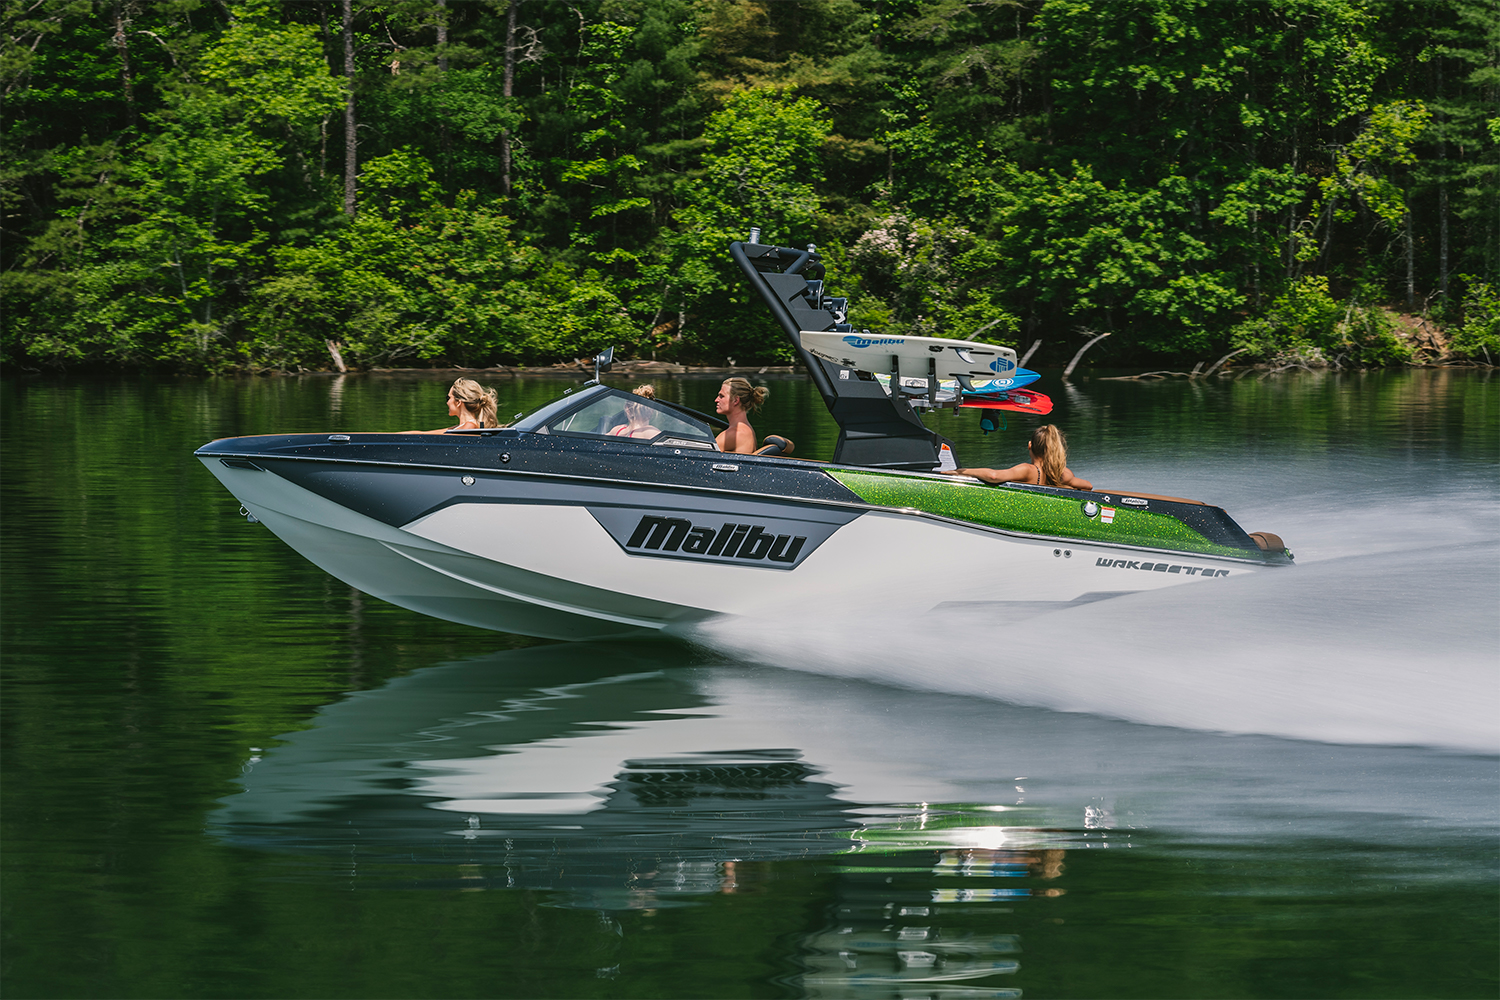 The 2021 Malibu Boats 23 LSV wakesetter towboat speeding across a lake